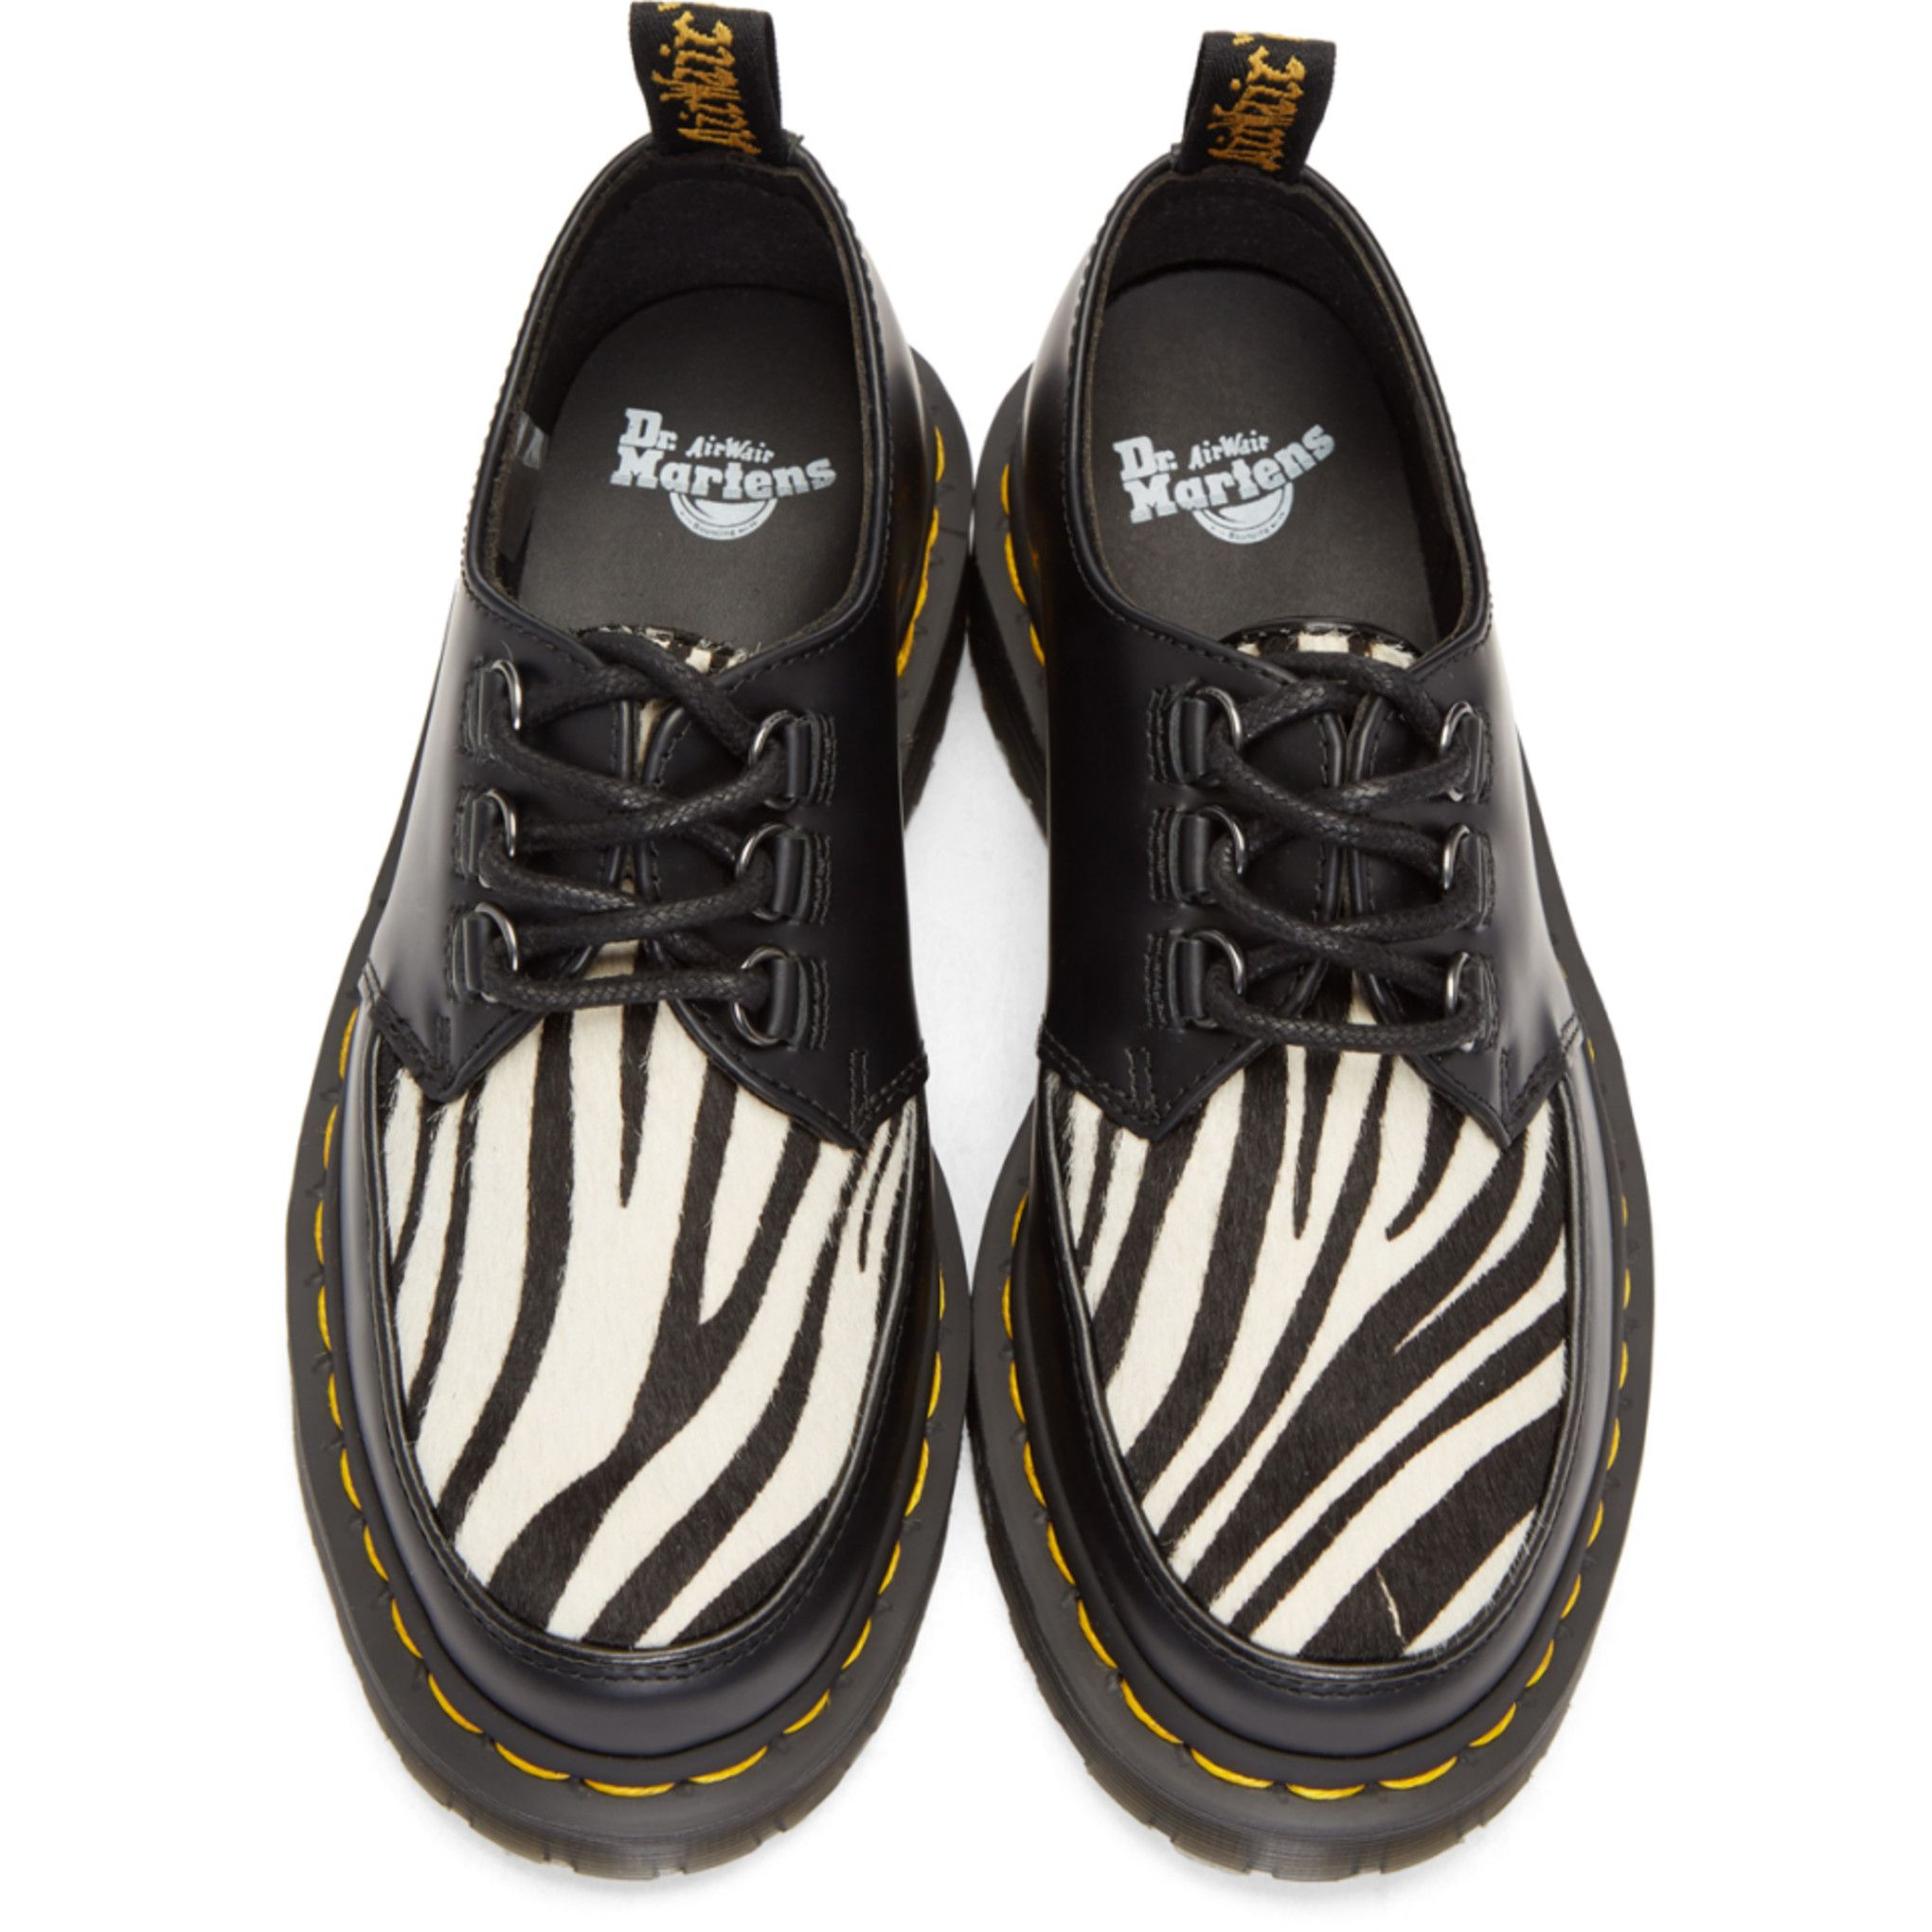 Black Ramsey Zebra Derbys Dr. Martens Cheap Prices Authentic Cheap Real Eastbay Discount Official 2018 Cheap Online View imrah